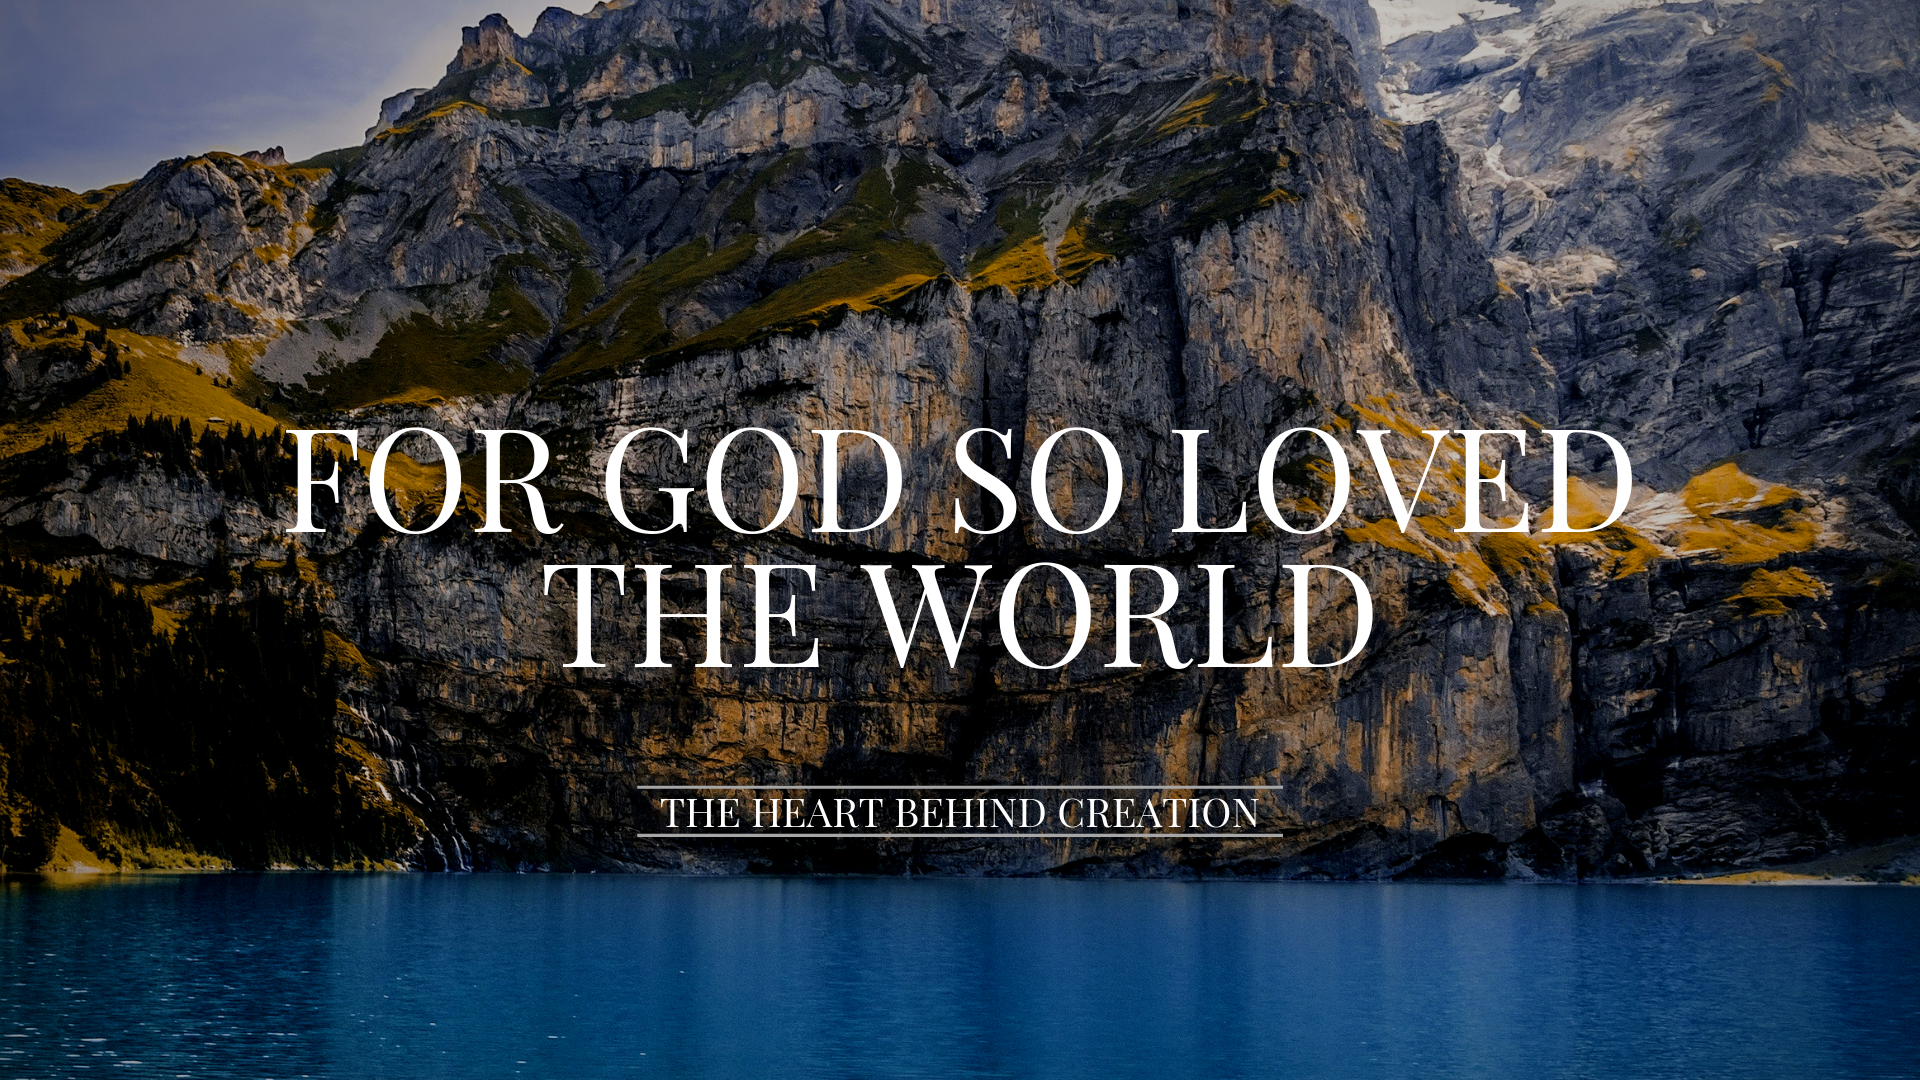 Copy of For God so loved the world-6.png